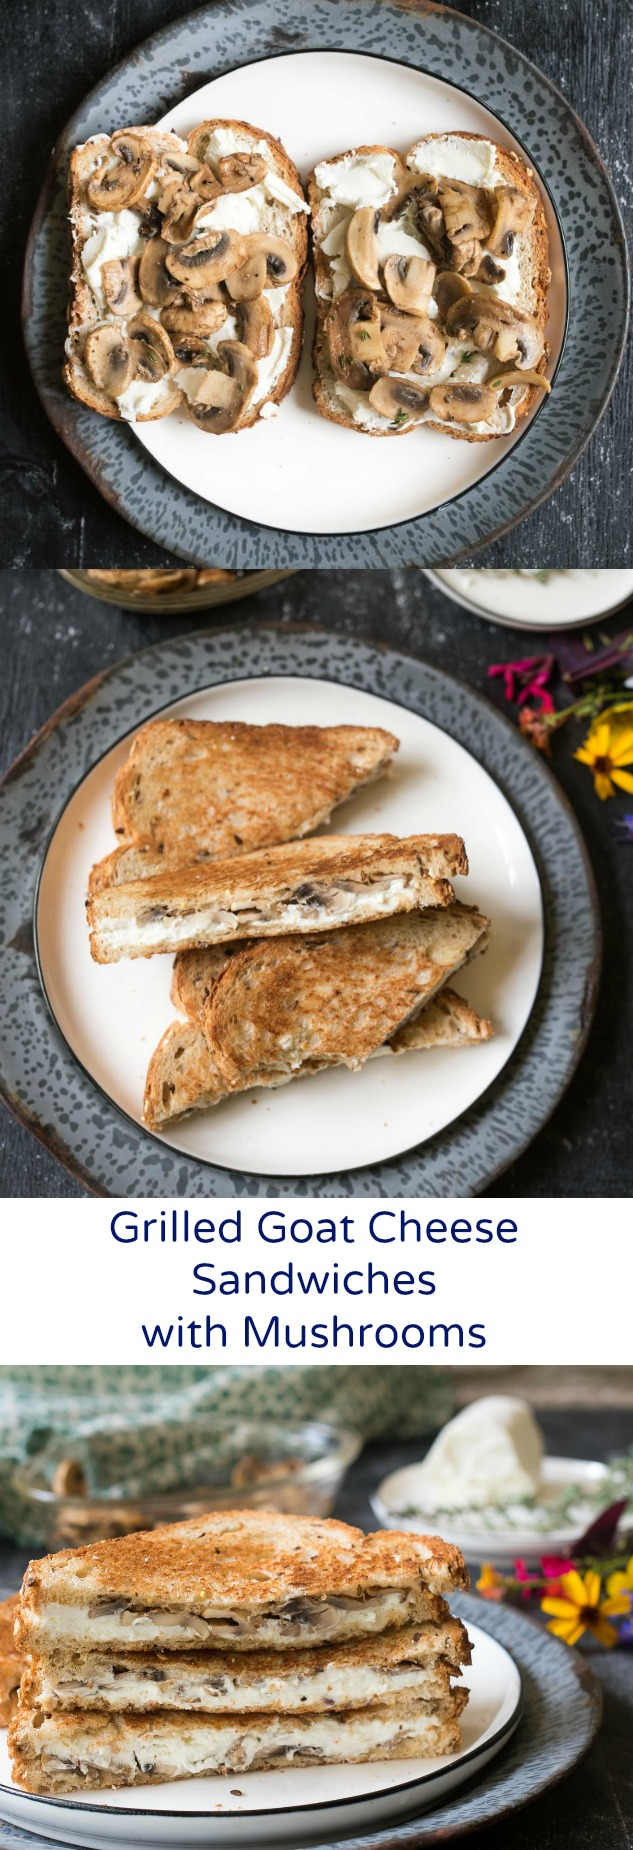 Grilled Goat Cheese Sandwiches with Mushrooms are simple yet gourmet, perfect for when you want grown-up flavors in a classic sandwich for any meal of the day.